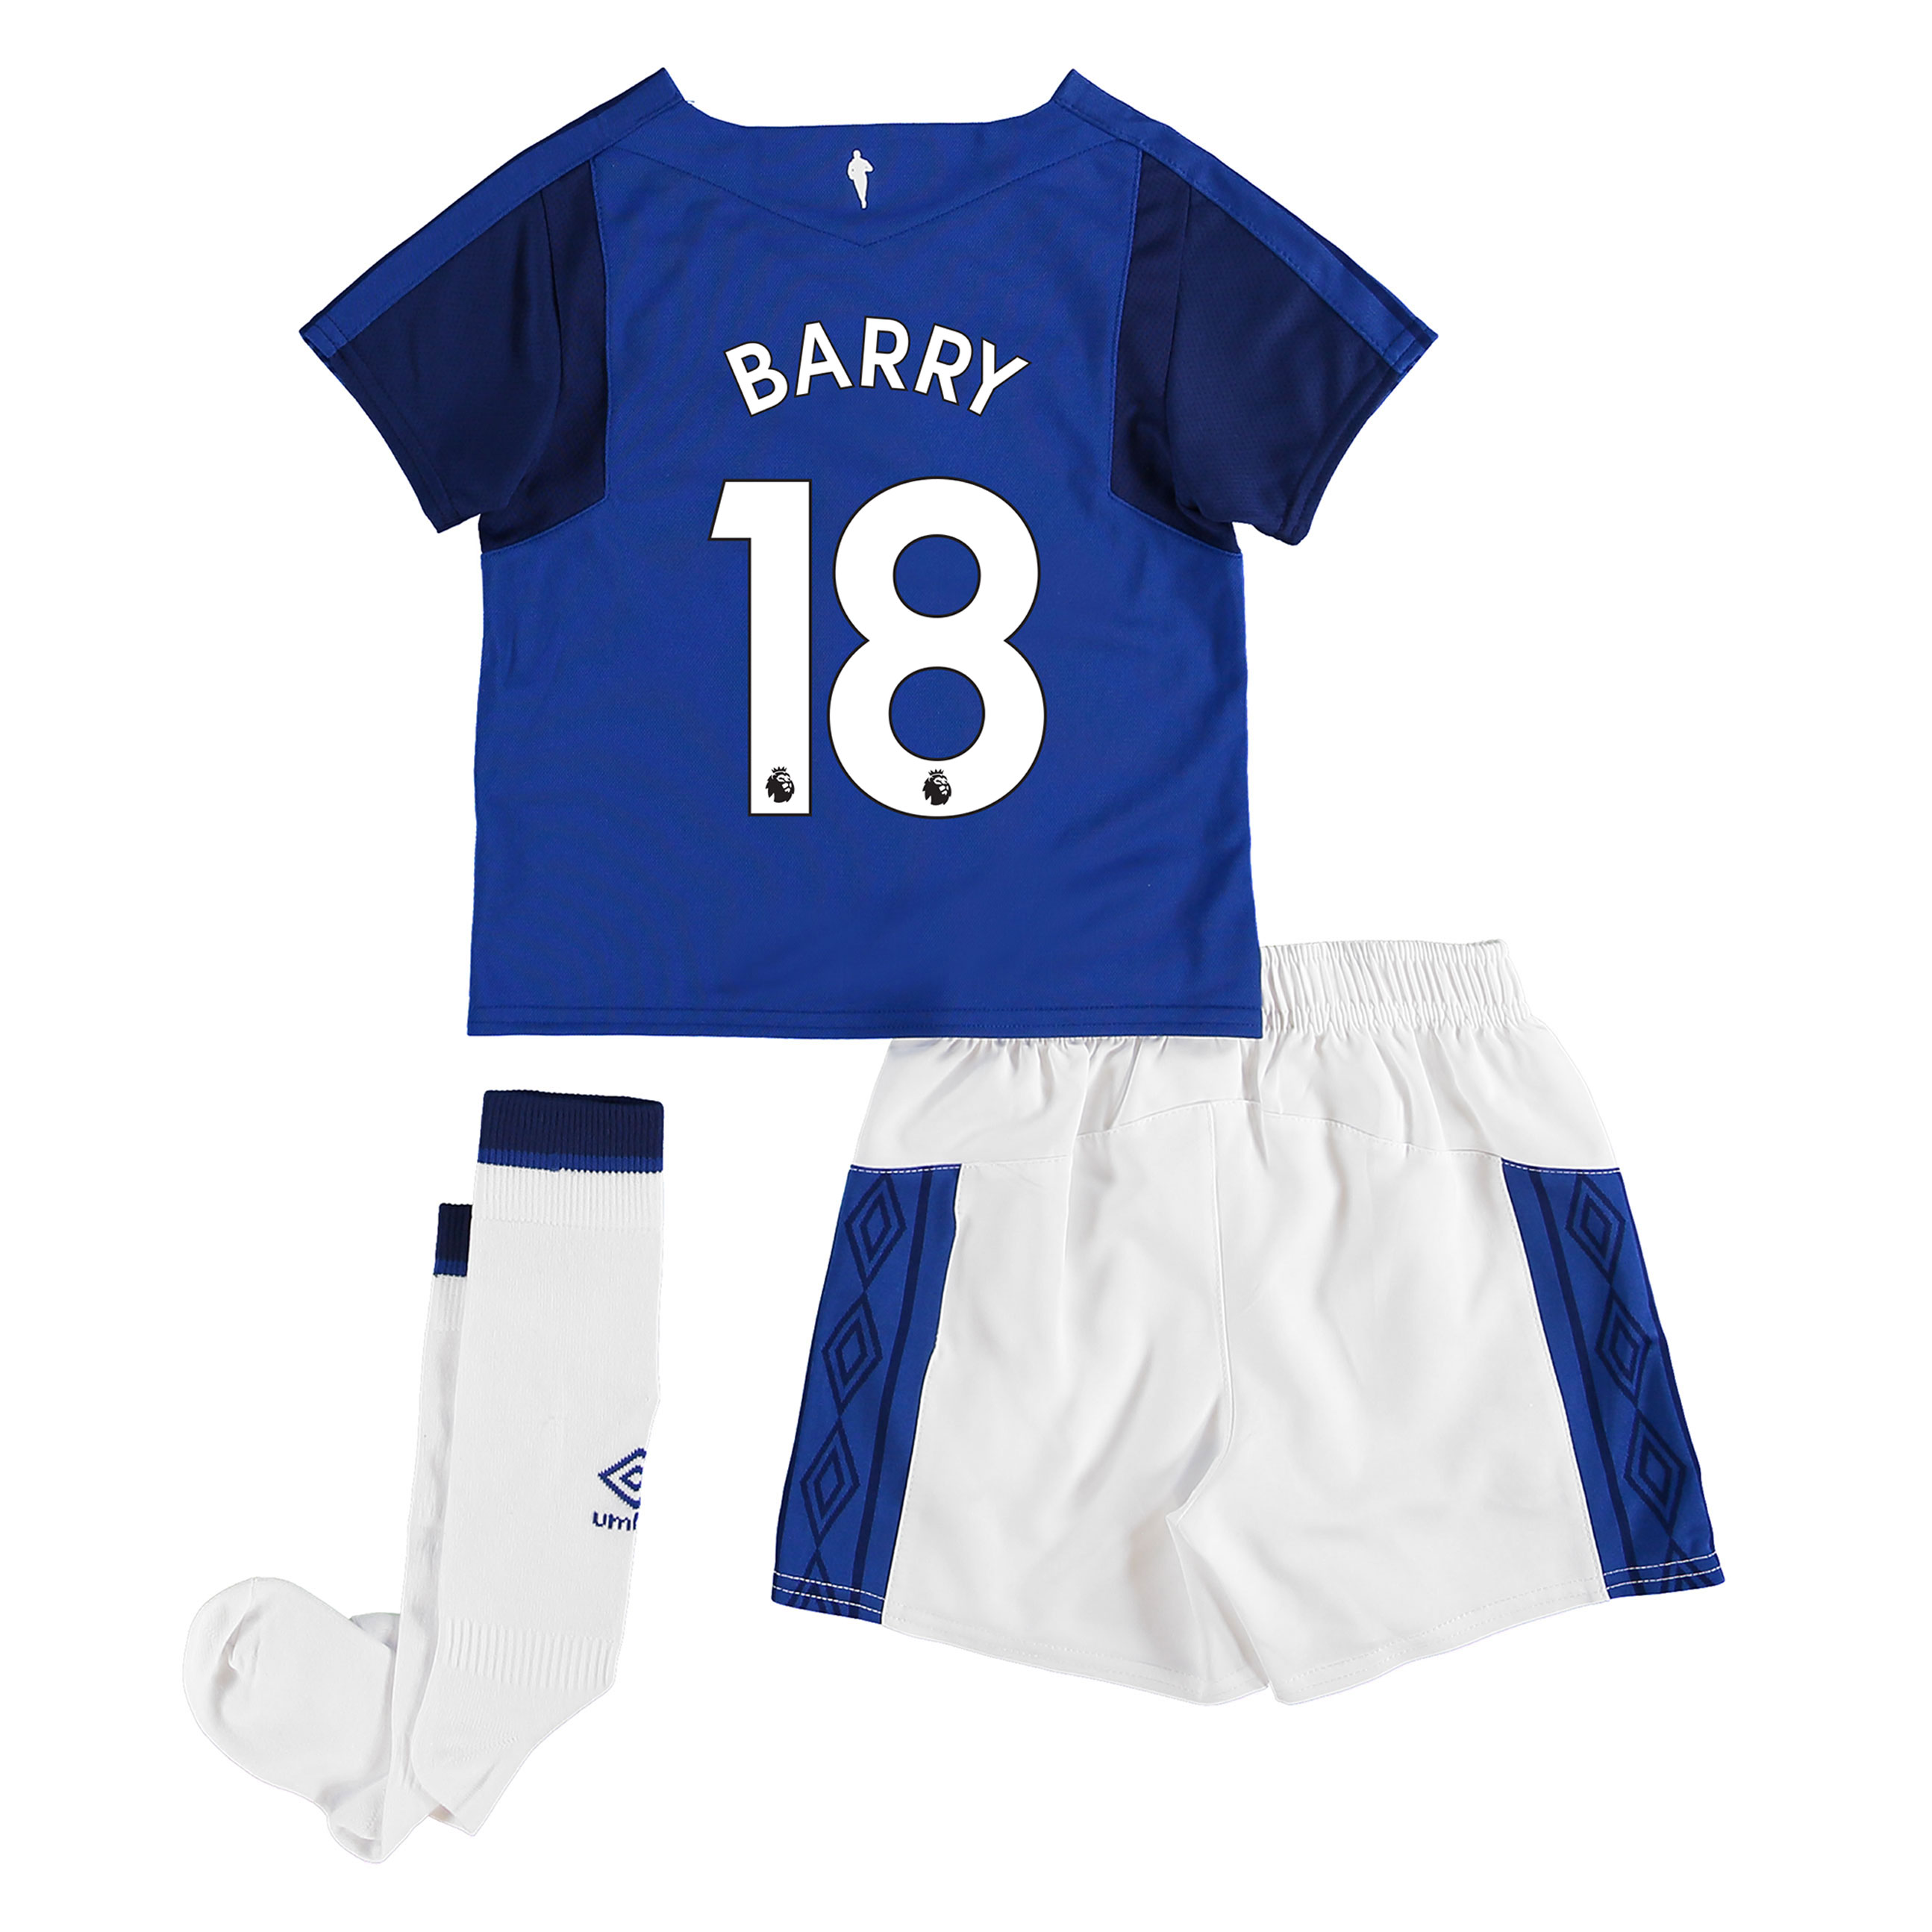 Everton Home Infant Kit 2017/18 with Barry 18 printing